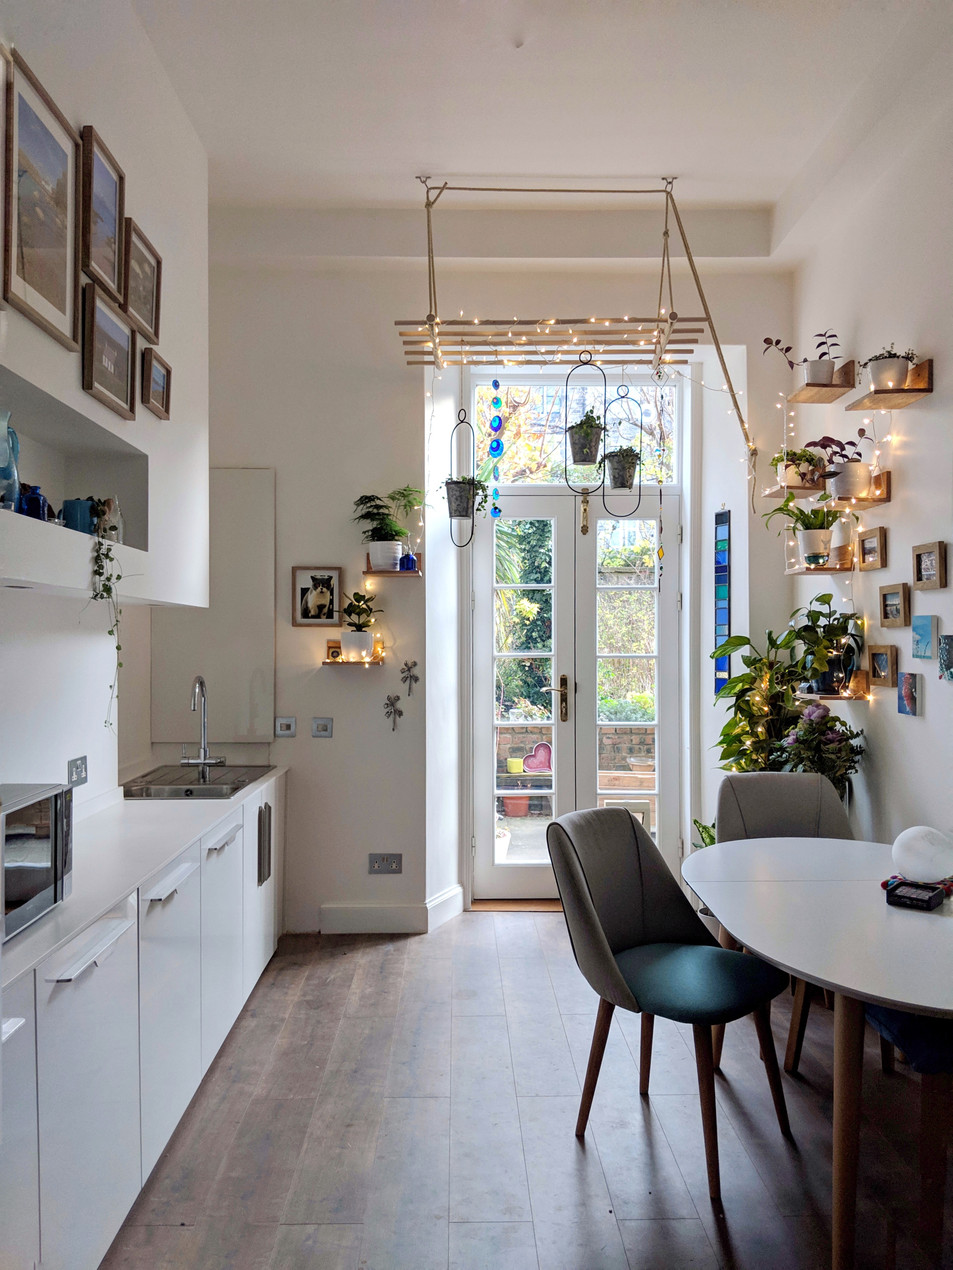 White kitchen with many plants on ceiling and wall. Glazed doors into garden.